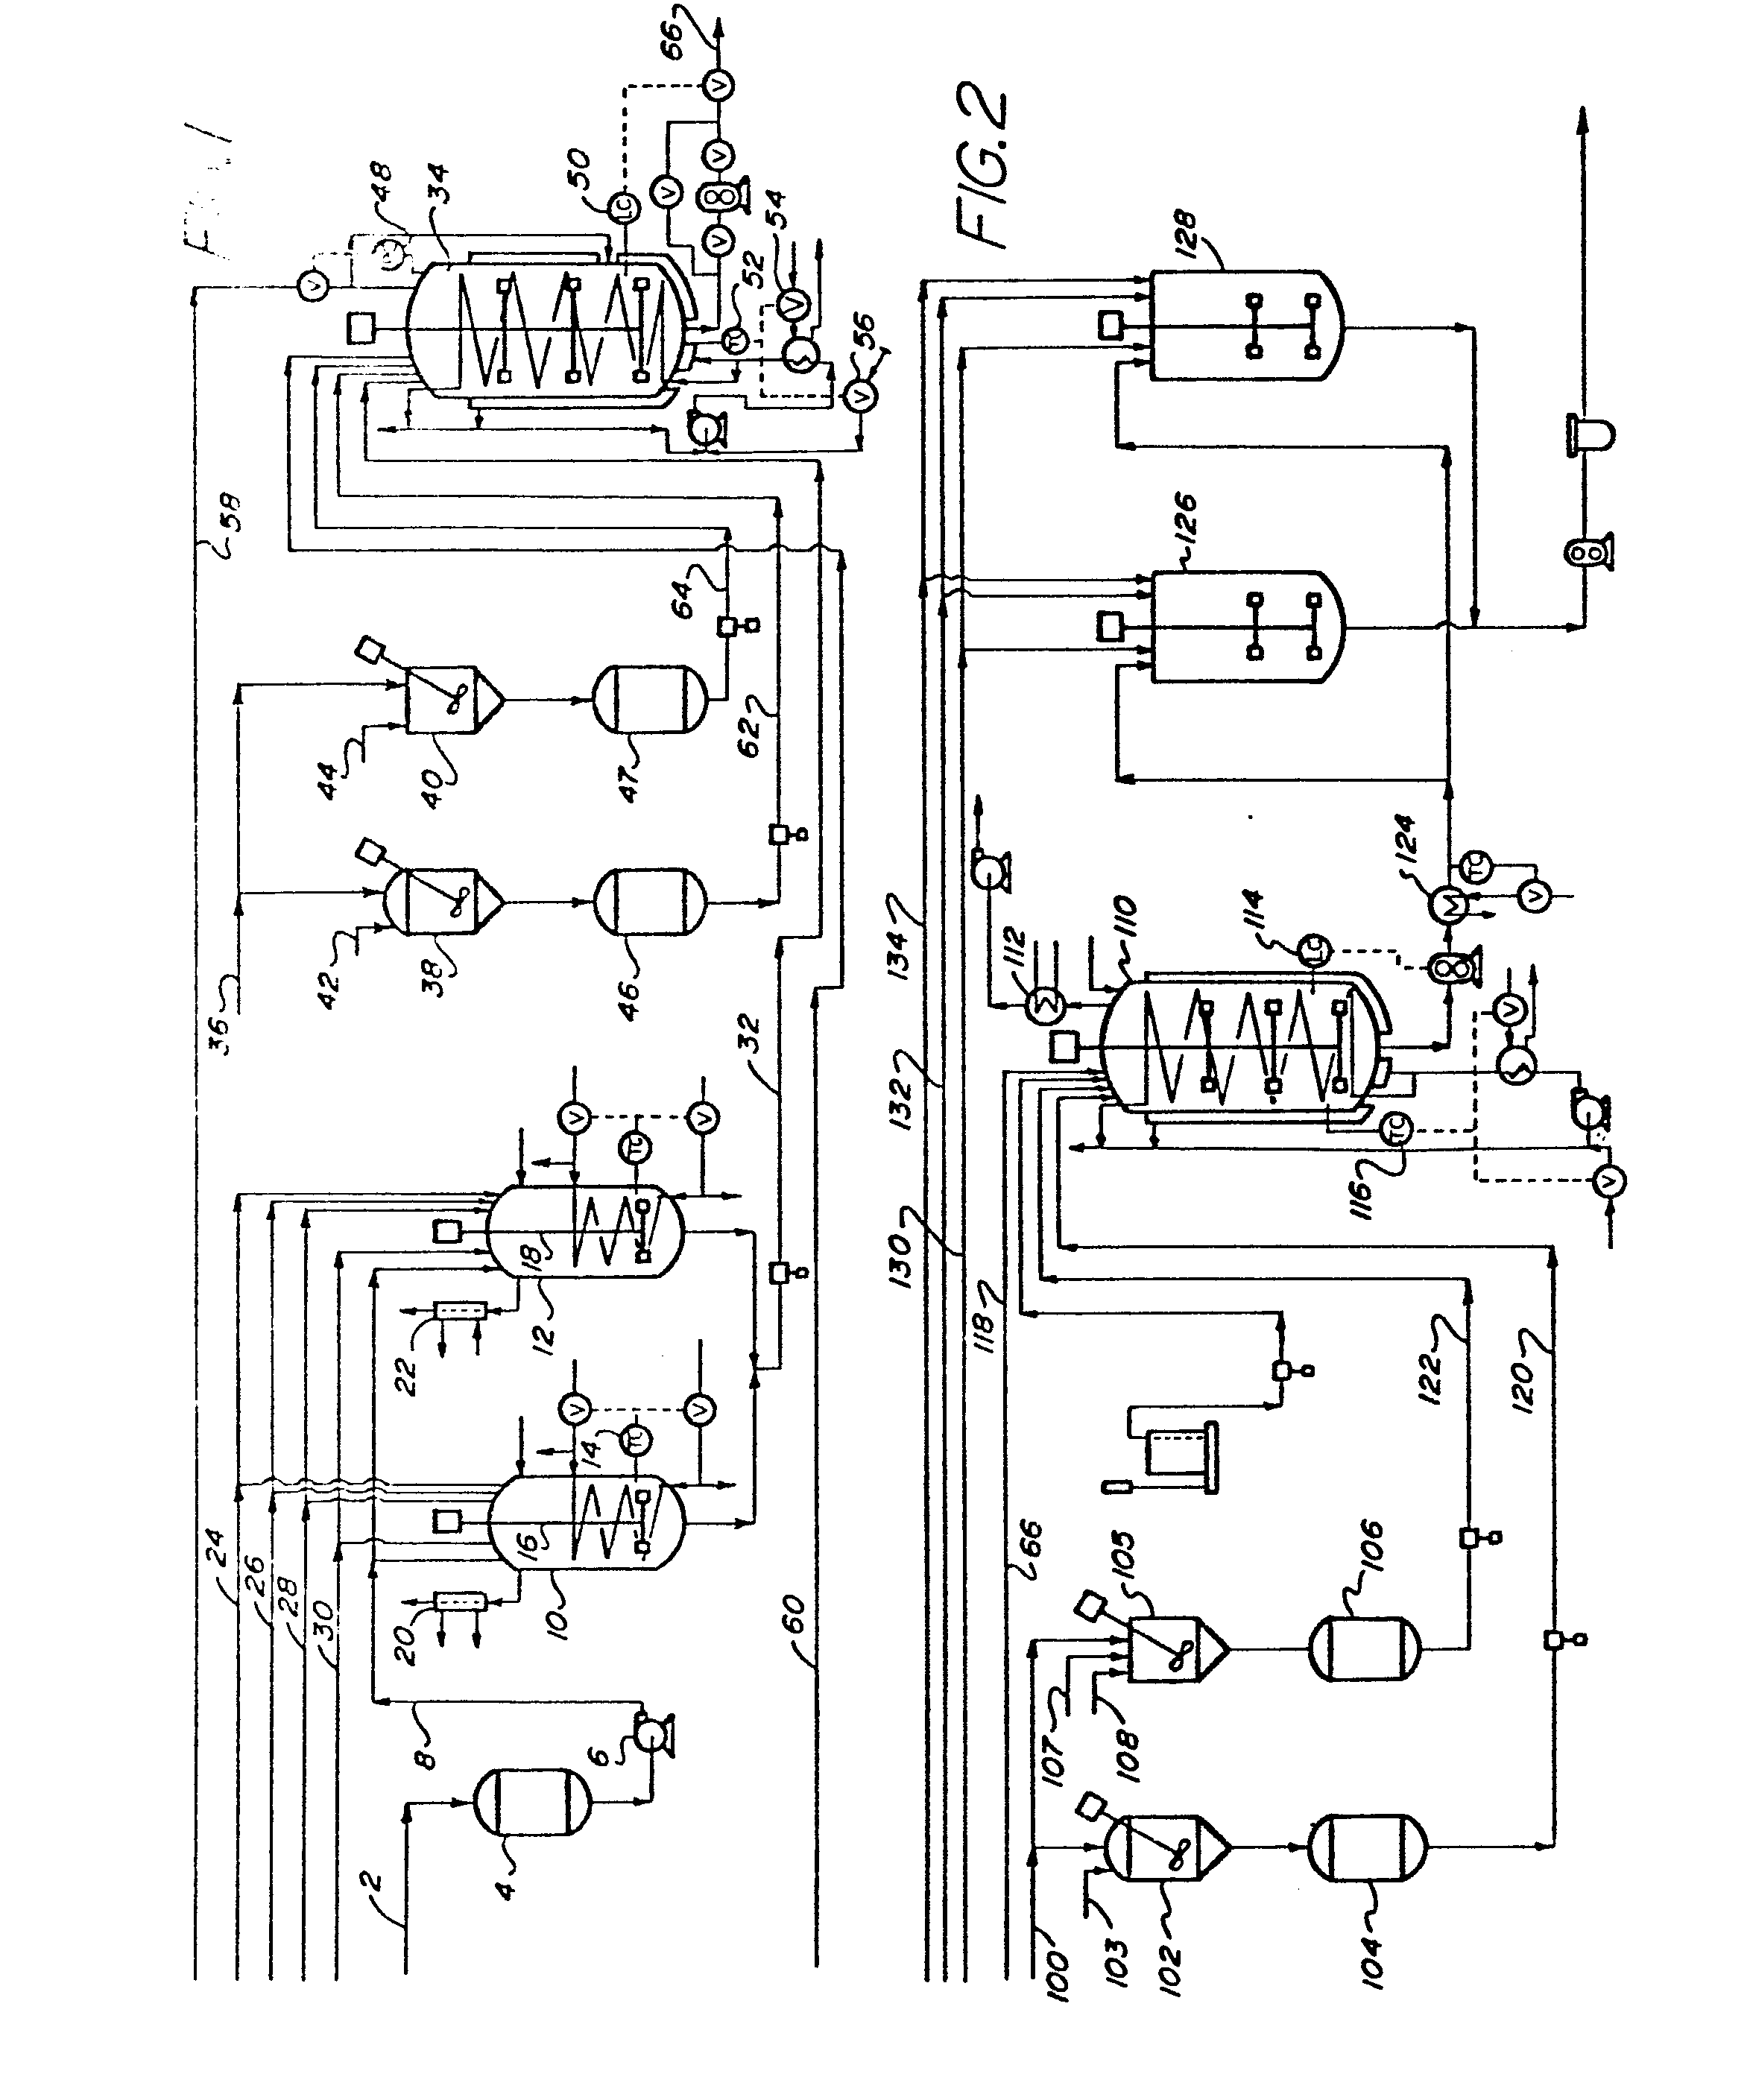 Patent Ep0005073a2 Continuous Process For Producing A